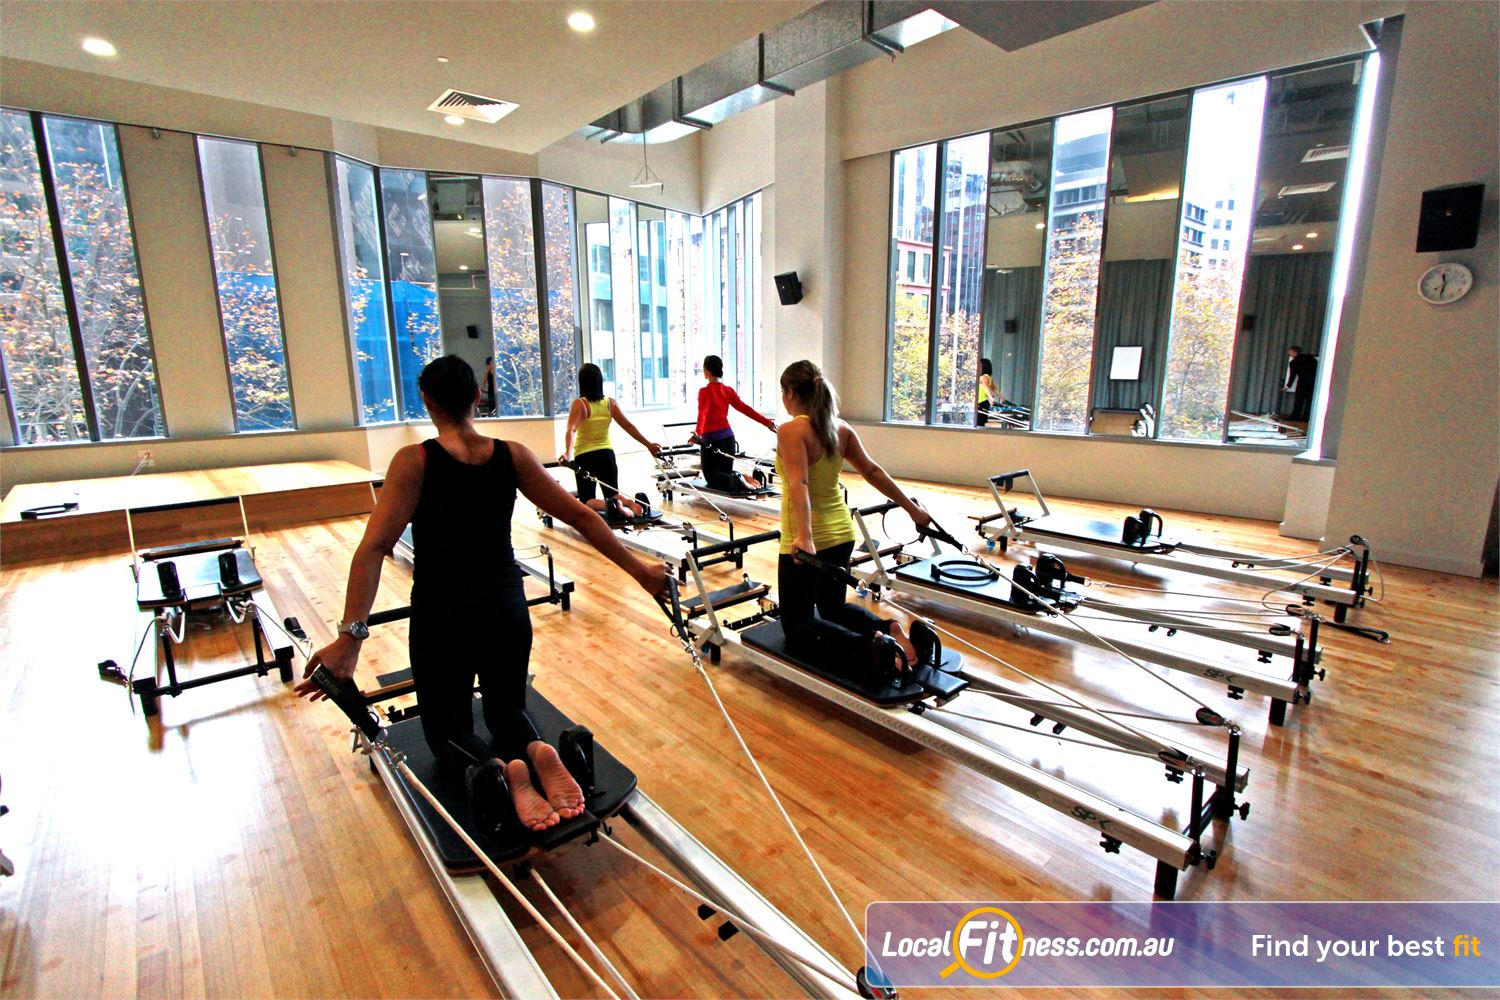 South Pacific Health Clubs Near Southbank Enjoy popular Melbourne Yoga and Pilates classes.